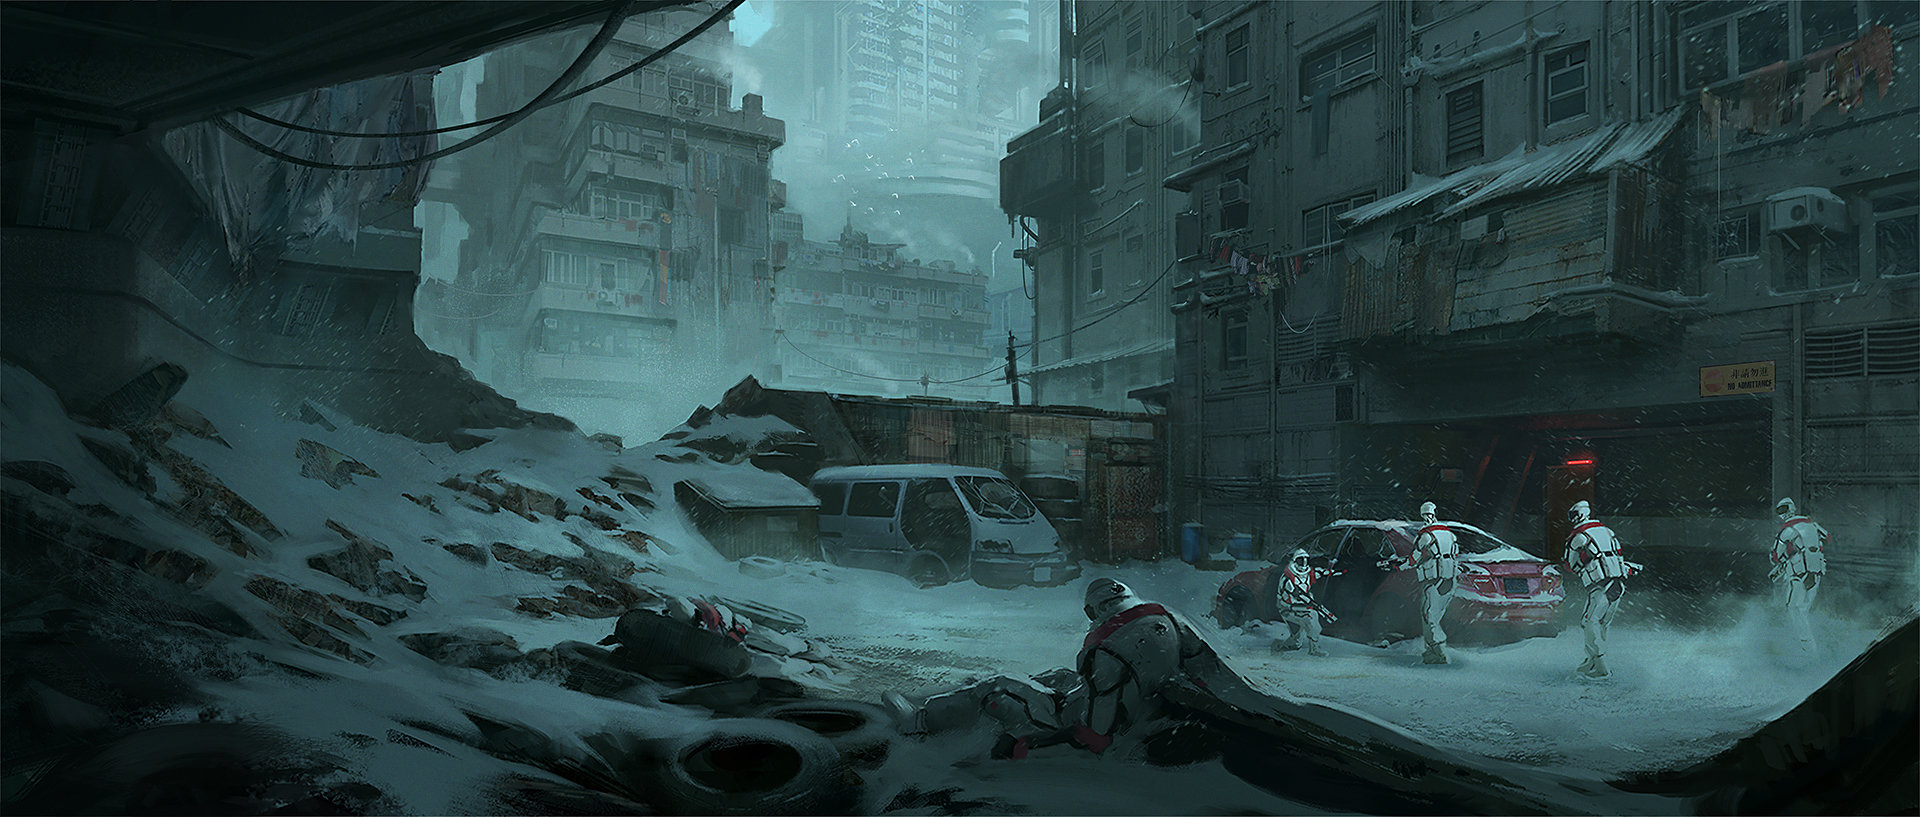 Klaus pillon bunkerinfiltration rtk final 02